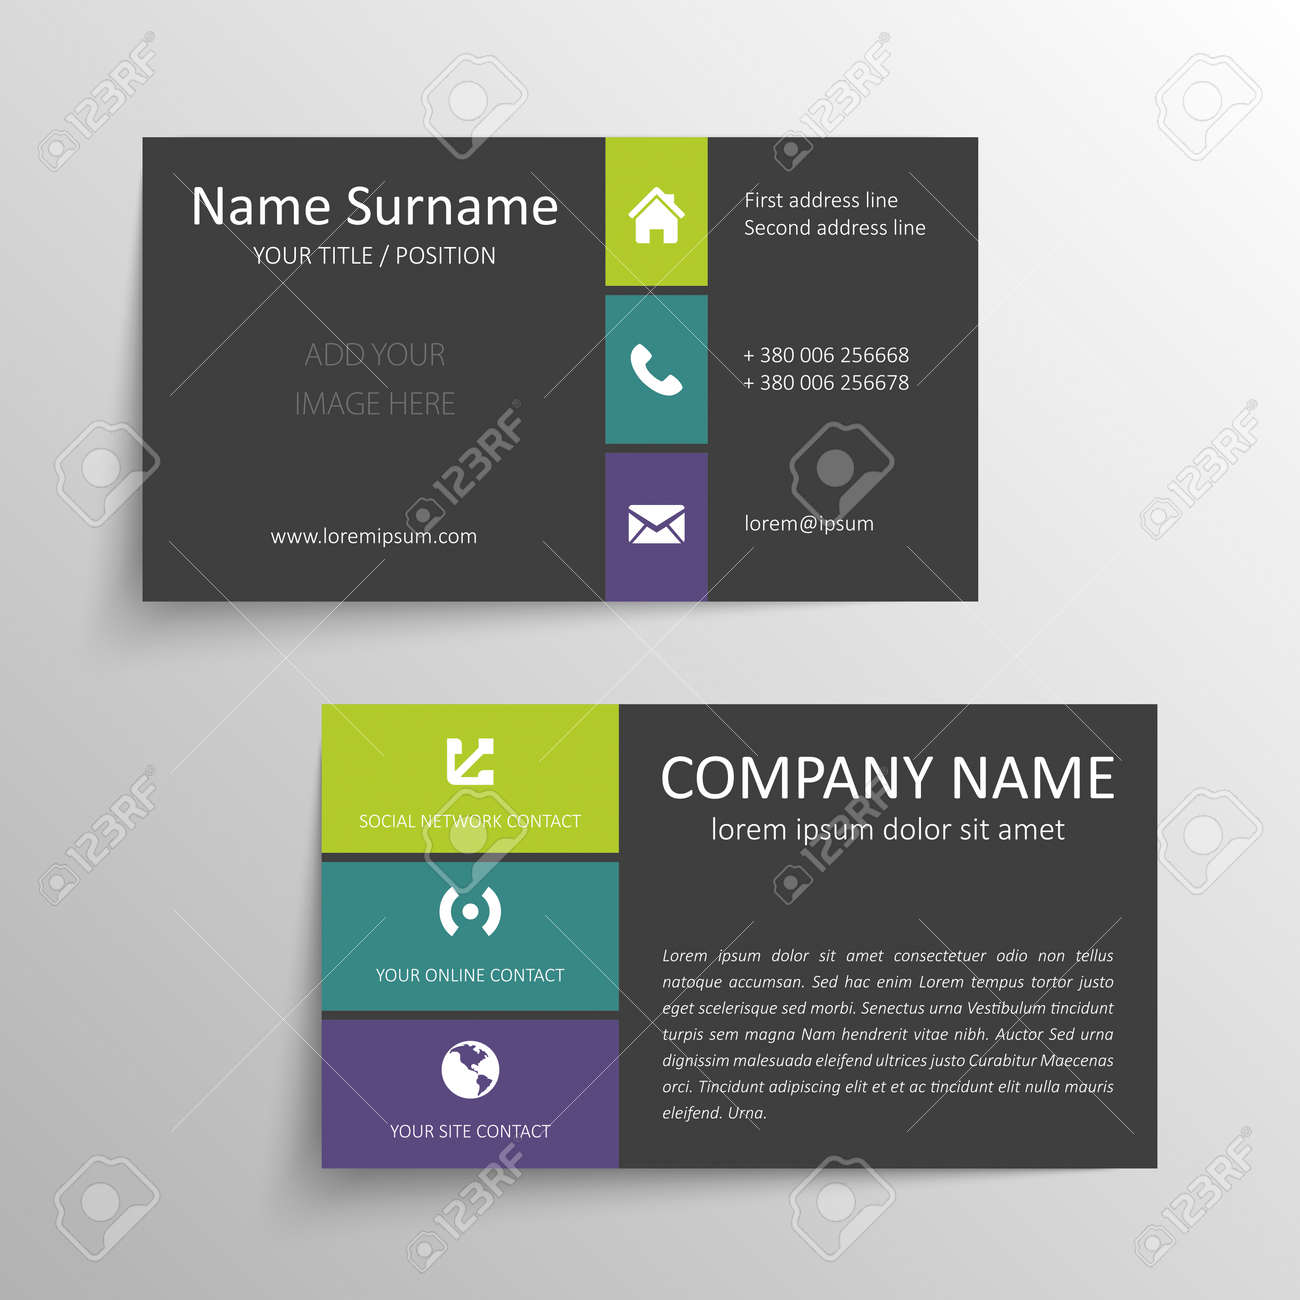 Modern Simple Business Card Template. Royalty Free Cliparts, Vectors ...